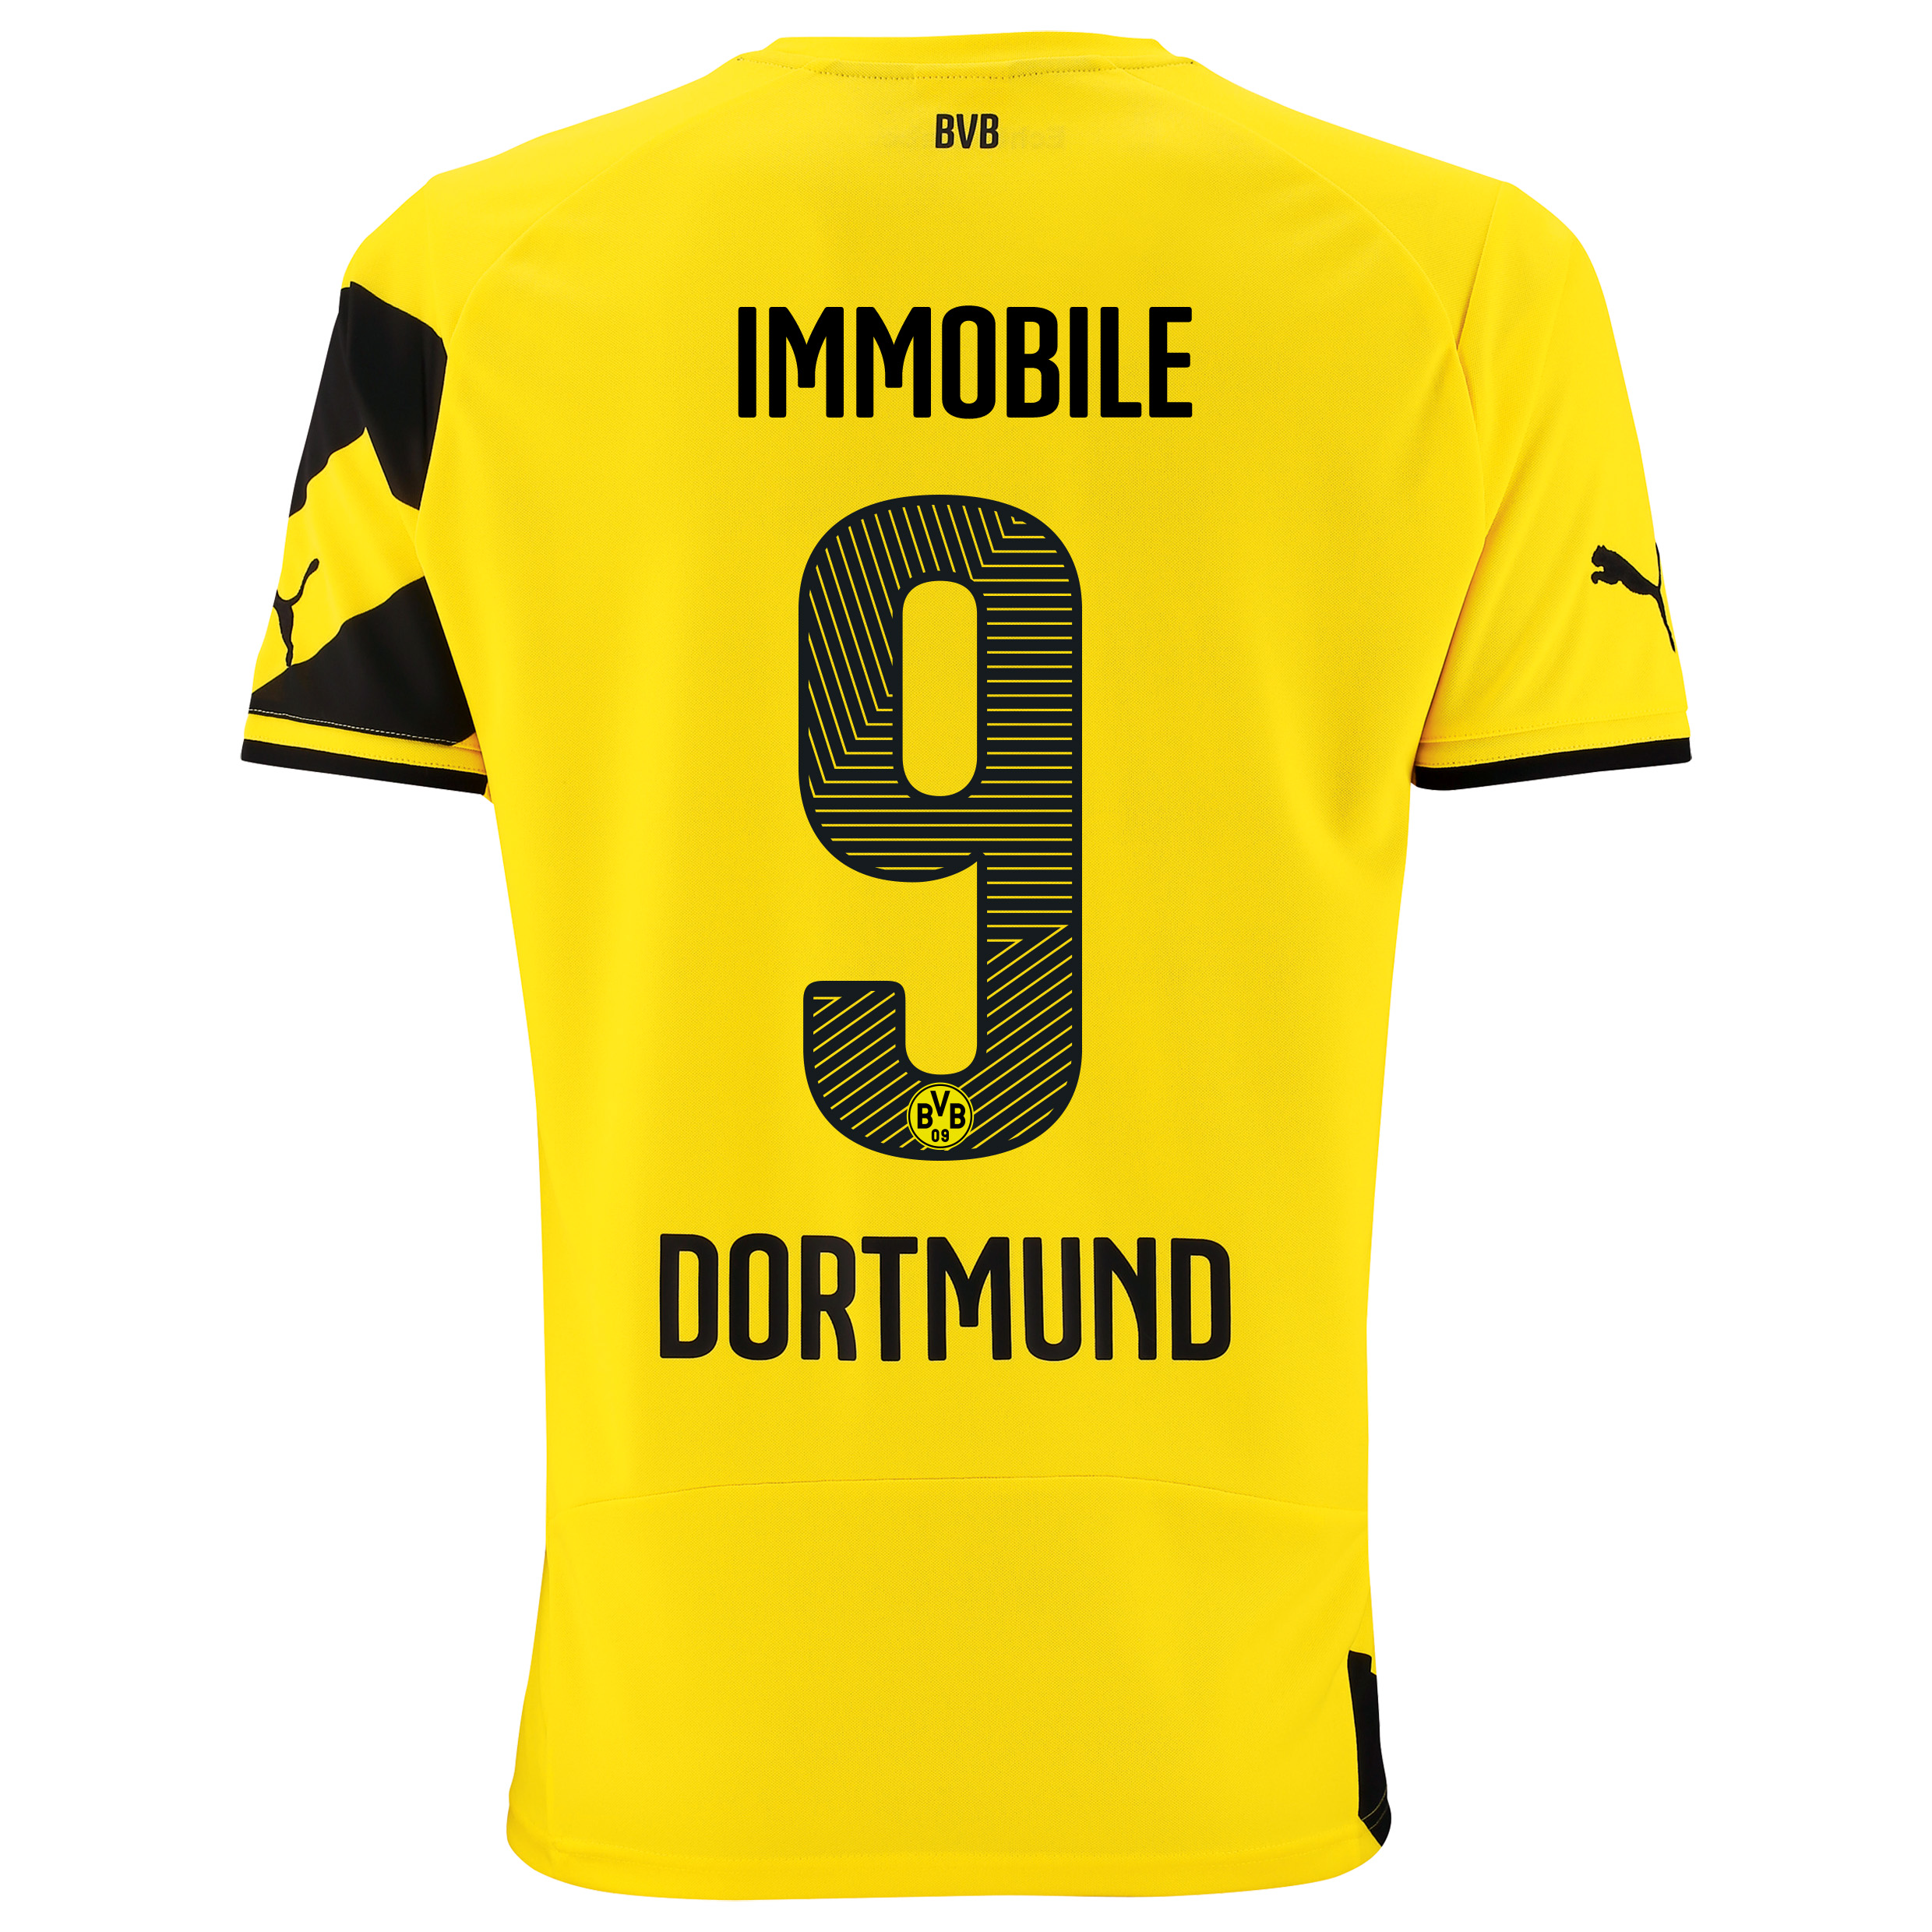 BVB Home Shirt 2014/15 with Ciro Immobile 9 printing